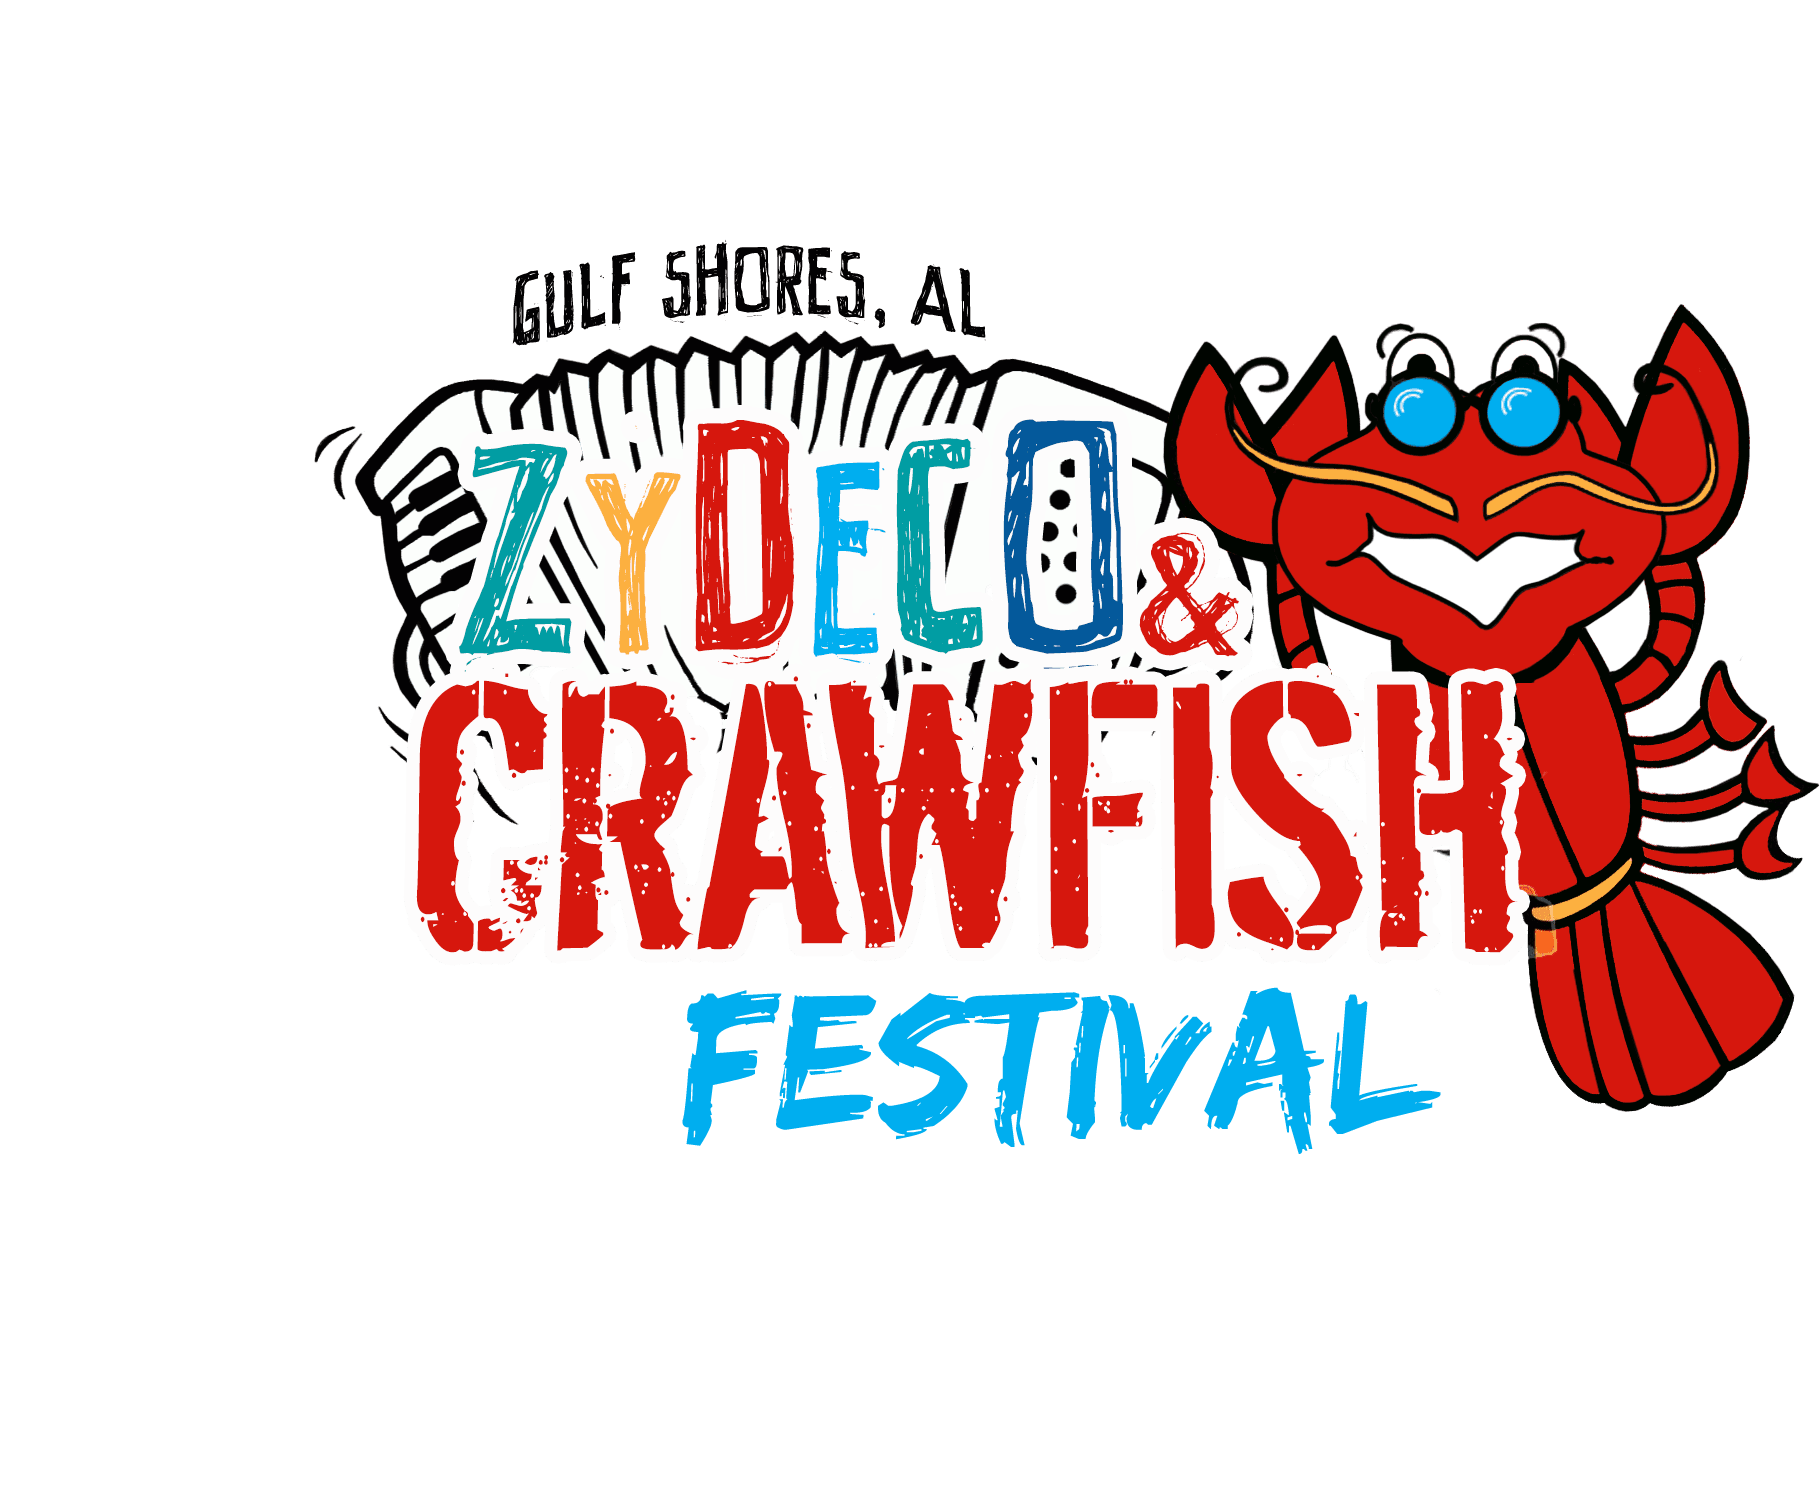 Zydeco Crawfish Festival without sponsor logos